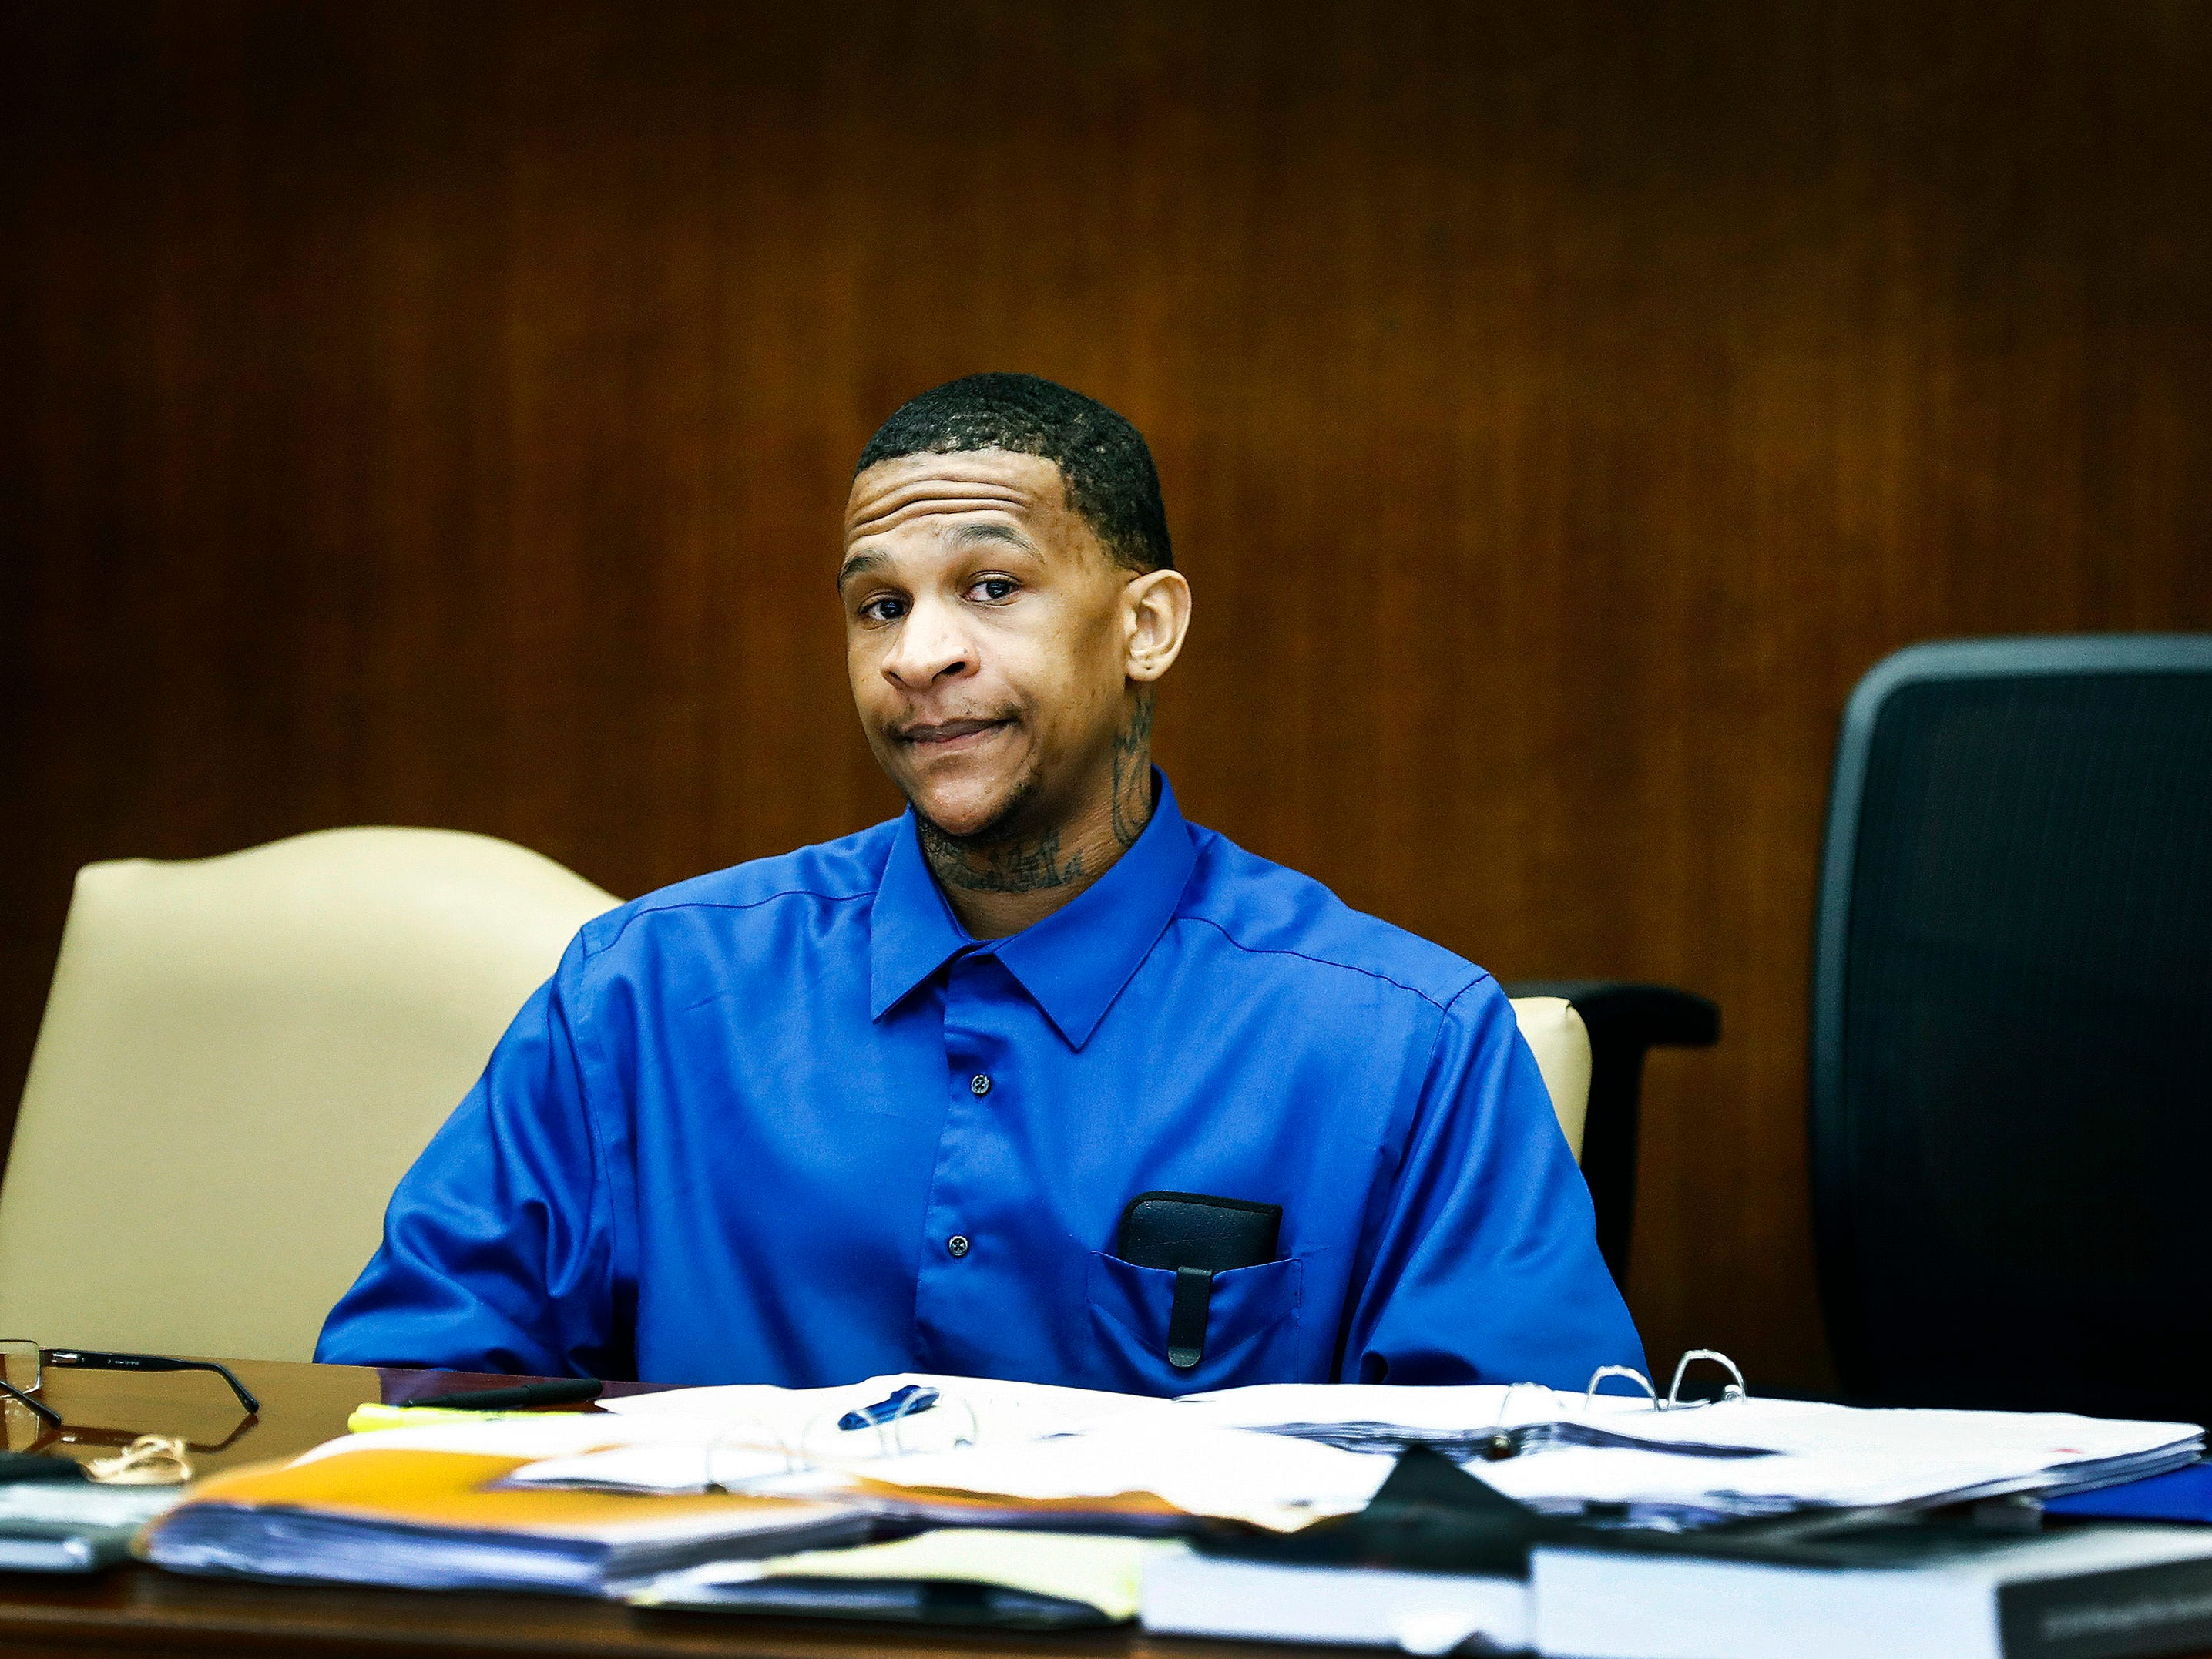 Quinton Tellis attends his retrial in Batesville, Miss., on Wednesday, Sept. 26, 2018. Tellis is charged with burning 19-year-old Jessica Chambers to death in December 2014. Tellis has pleaded not guilty to the murder. (Mark Weber /The Commercial Appeal via AP, Pool)